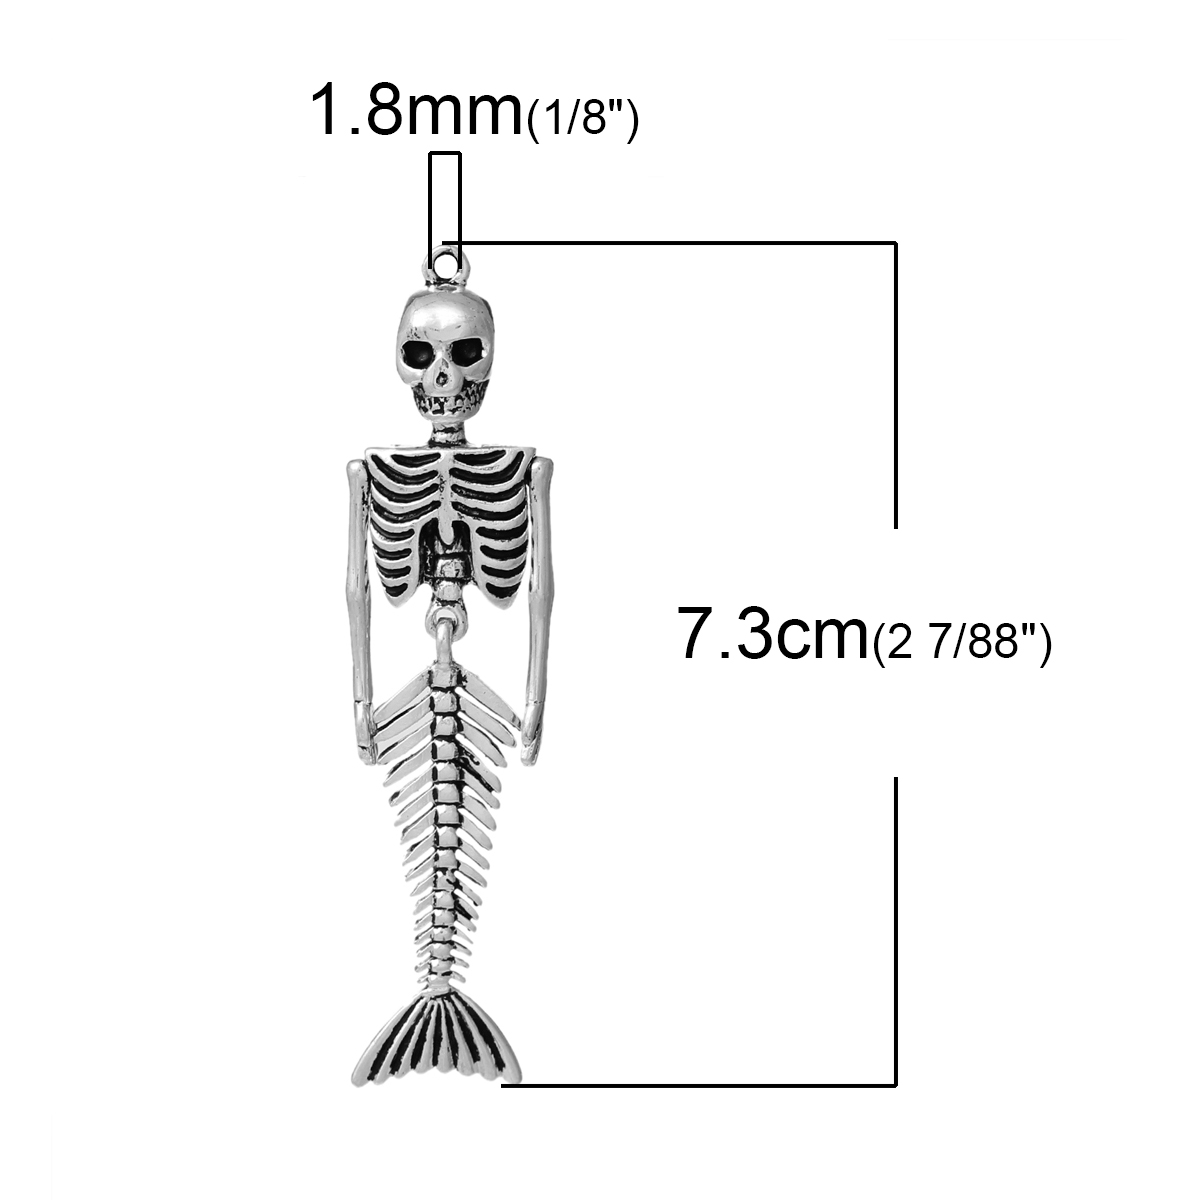 medium resolution of 3pcs vintage mermaid body skull skeleton shaped pendants antique holloween necklaces pendants for jewelry making diy charms in pendants from jewelry